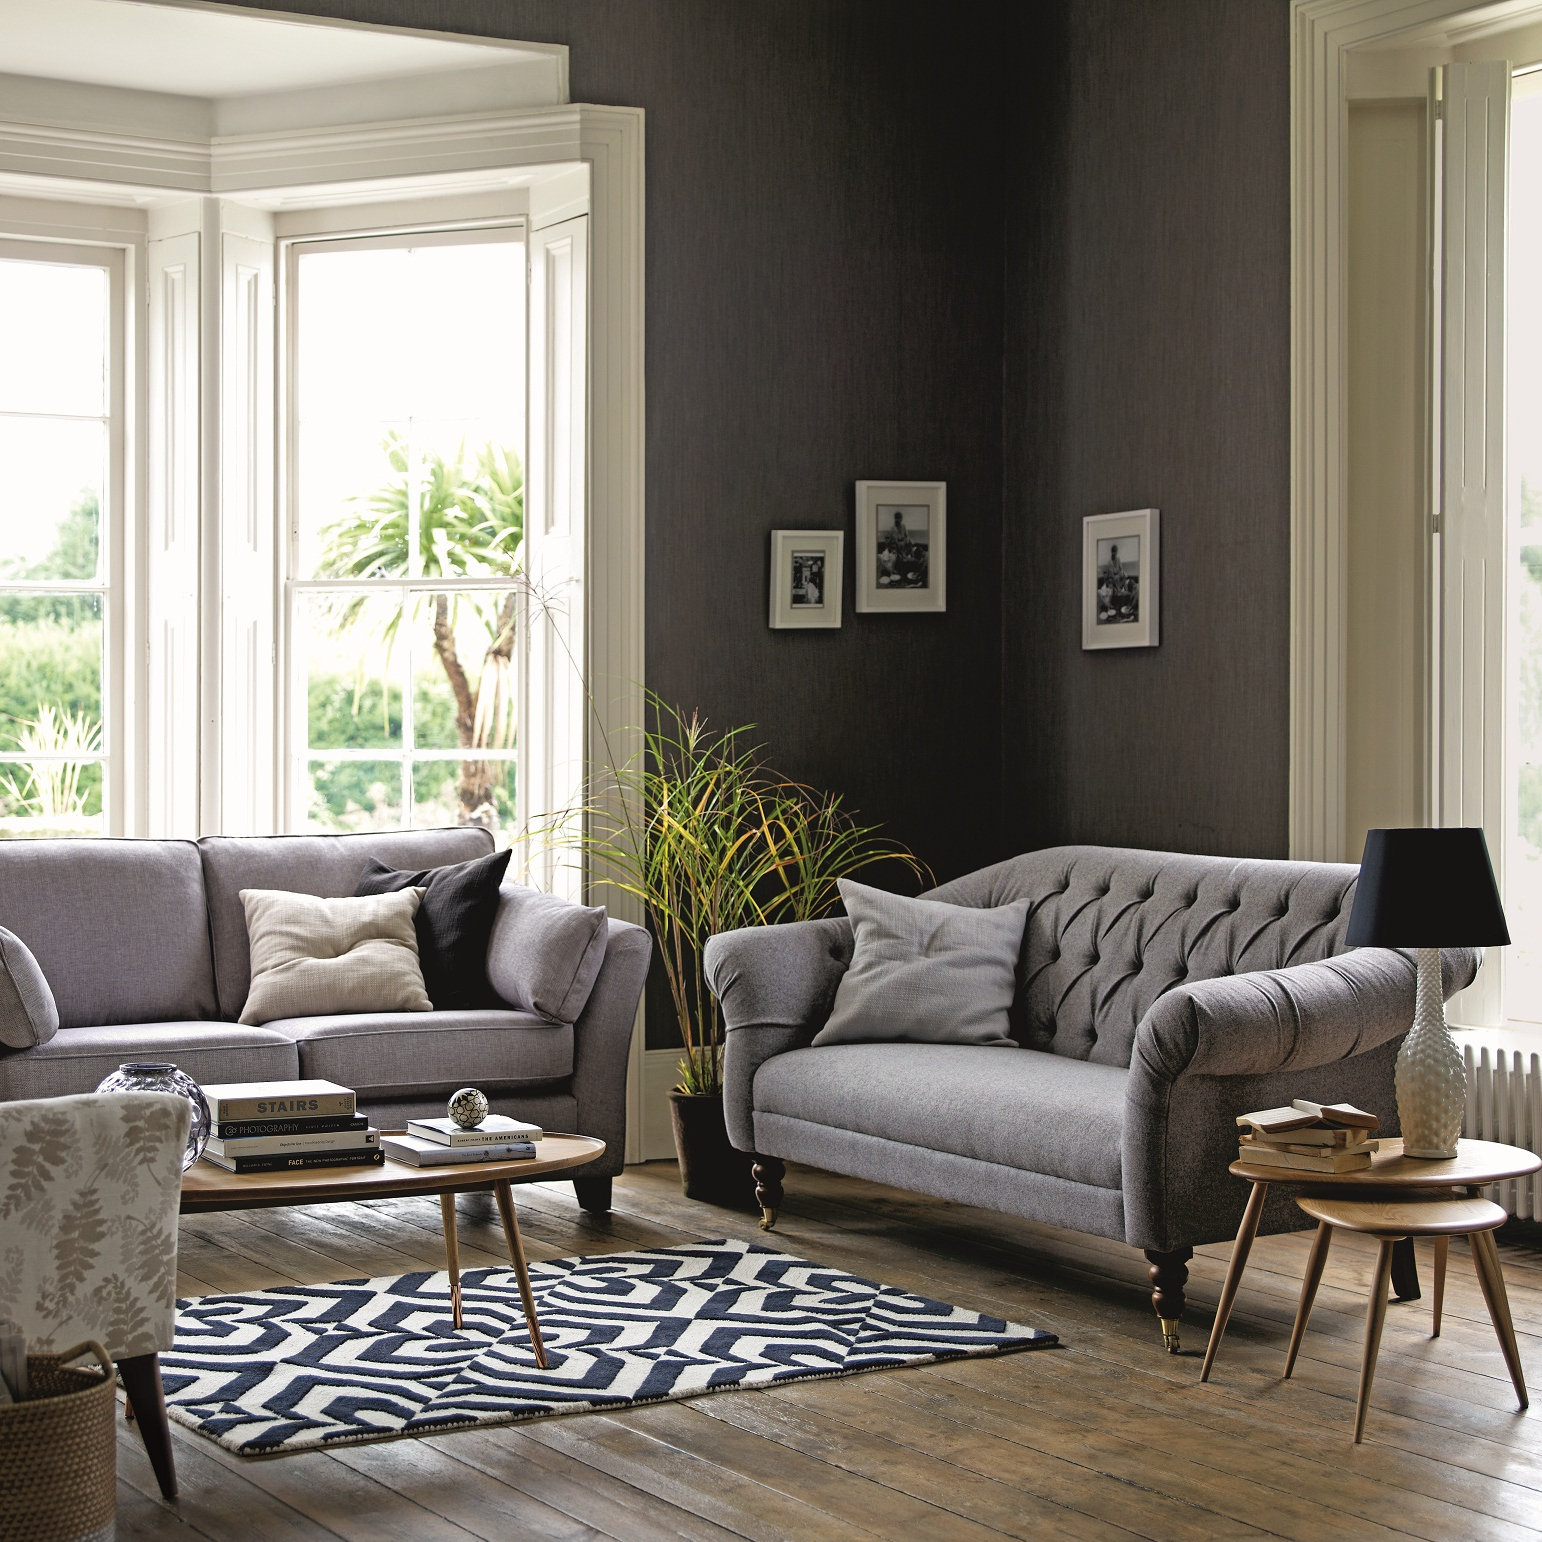 Decorate your living room with matching grey sofas and